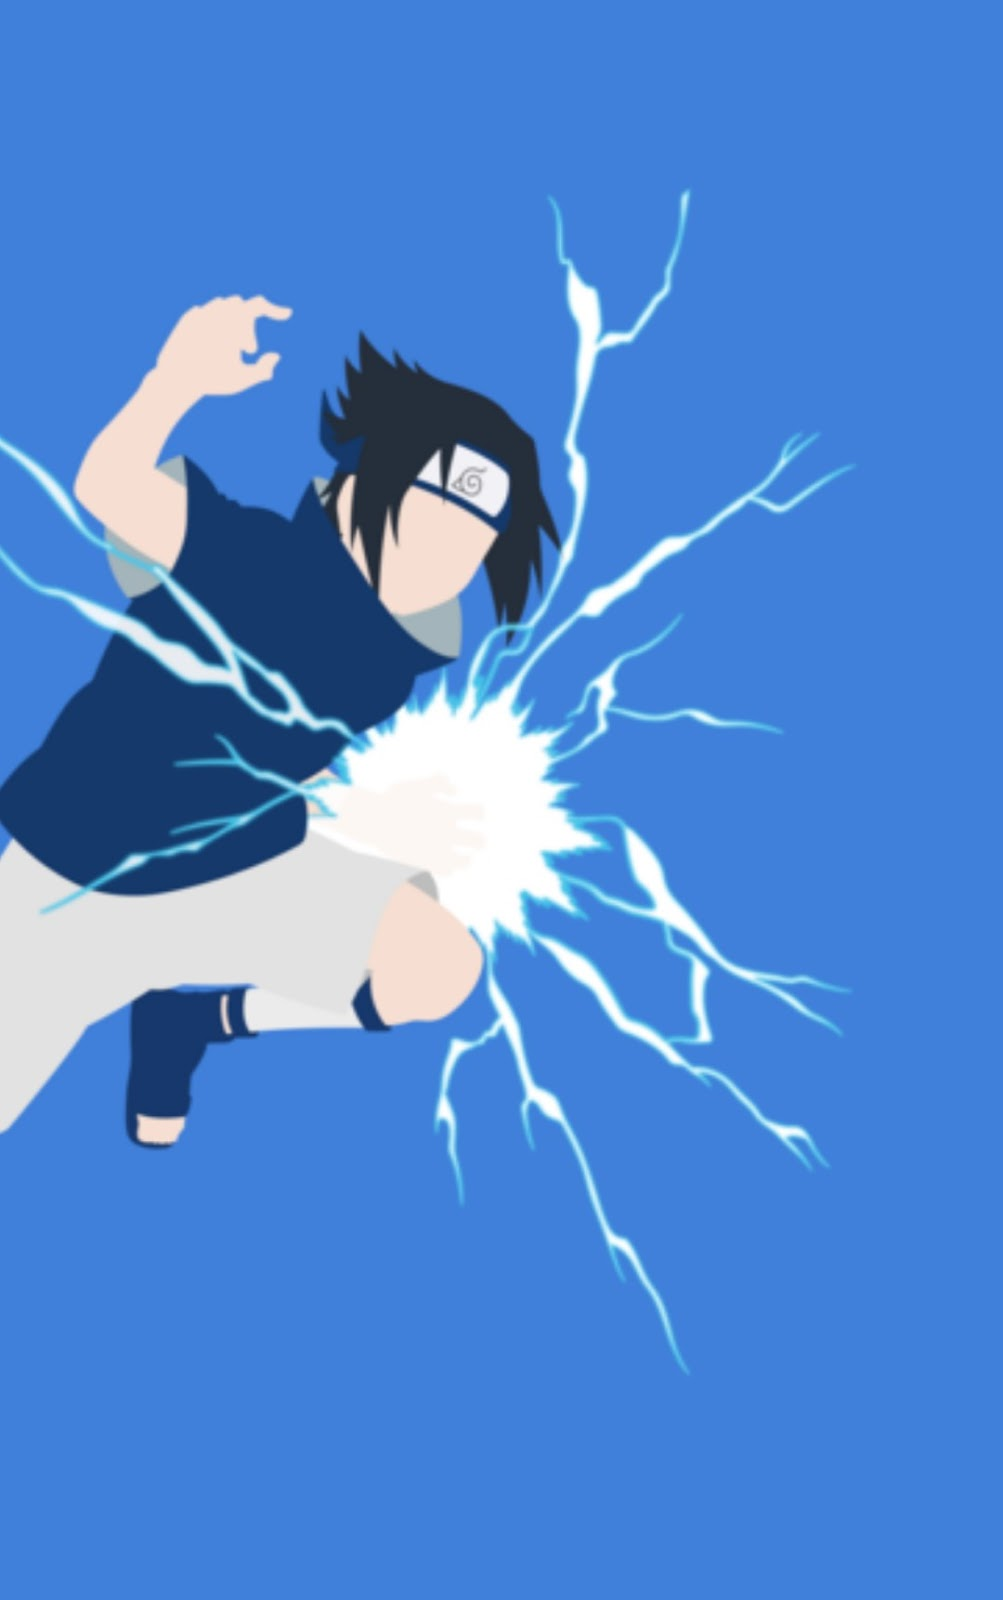 3. Download wallpaper uchiha sasuke vektor untuk android dan whatsApp chat